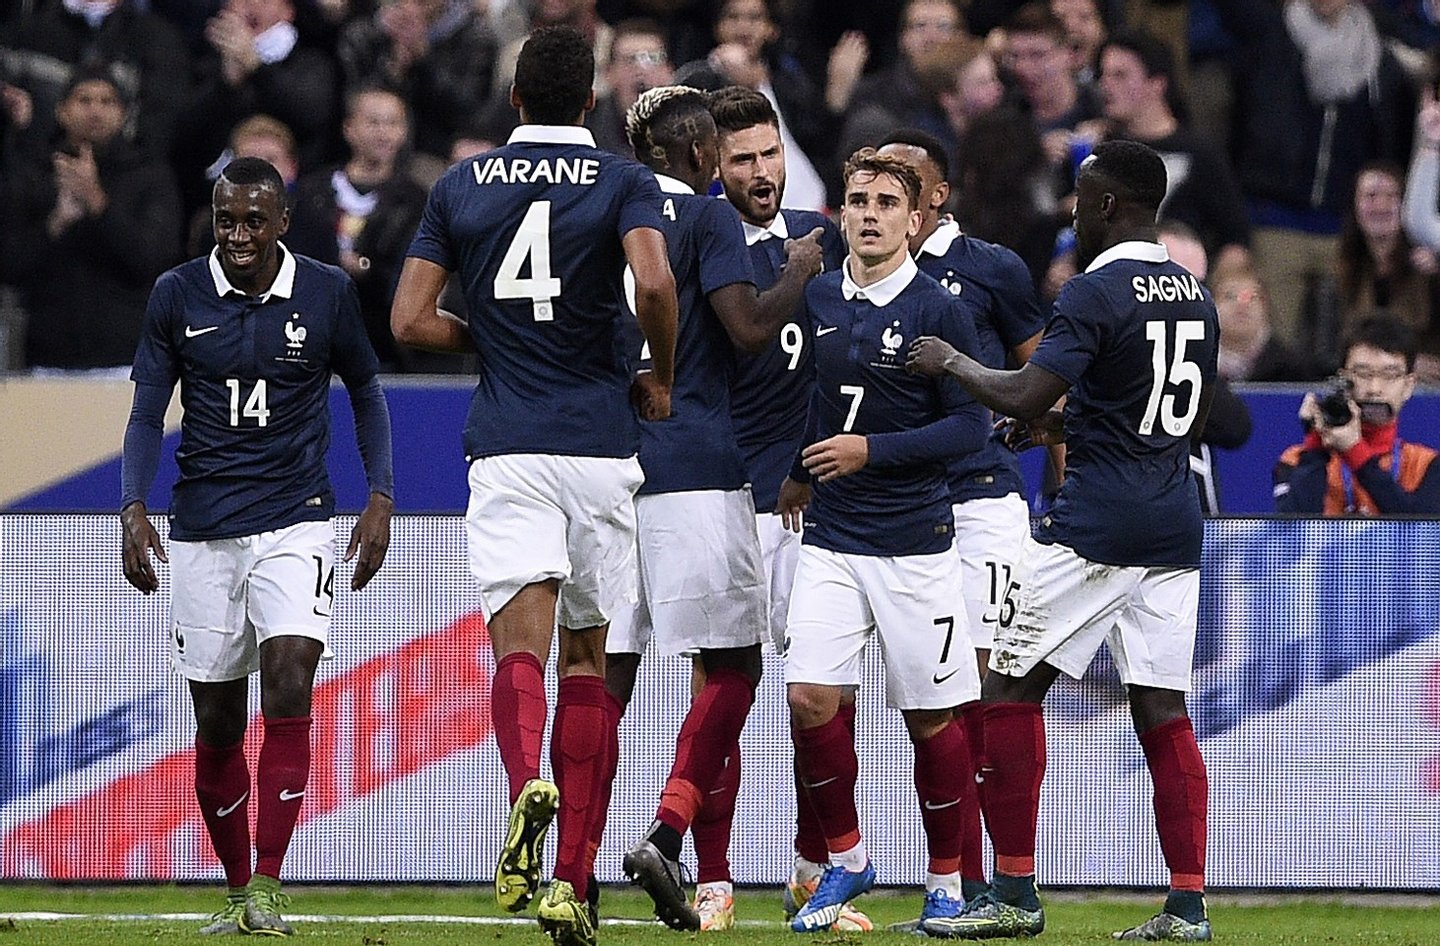 (From L) French midfielder Blaise Matuidi, French defender Raphael Varane, French midfielder Paul Pogba, French forward Olivier Giroud, French midfielder Antoine Griezmann and French defender Bacary Sagna celebrate after Giroud opened the scoring during a friendly international football match between France and Germany ahead of the Euro 2016, on November 13, 2015 at the Stade de France stadium in Saint-Denis, north of Paris. AFP PHOTO / FRANCK FIFE (Photo credit should read FRANCK FIFE/AFP/Getty Images)